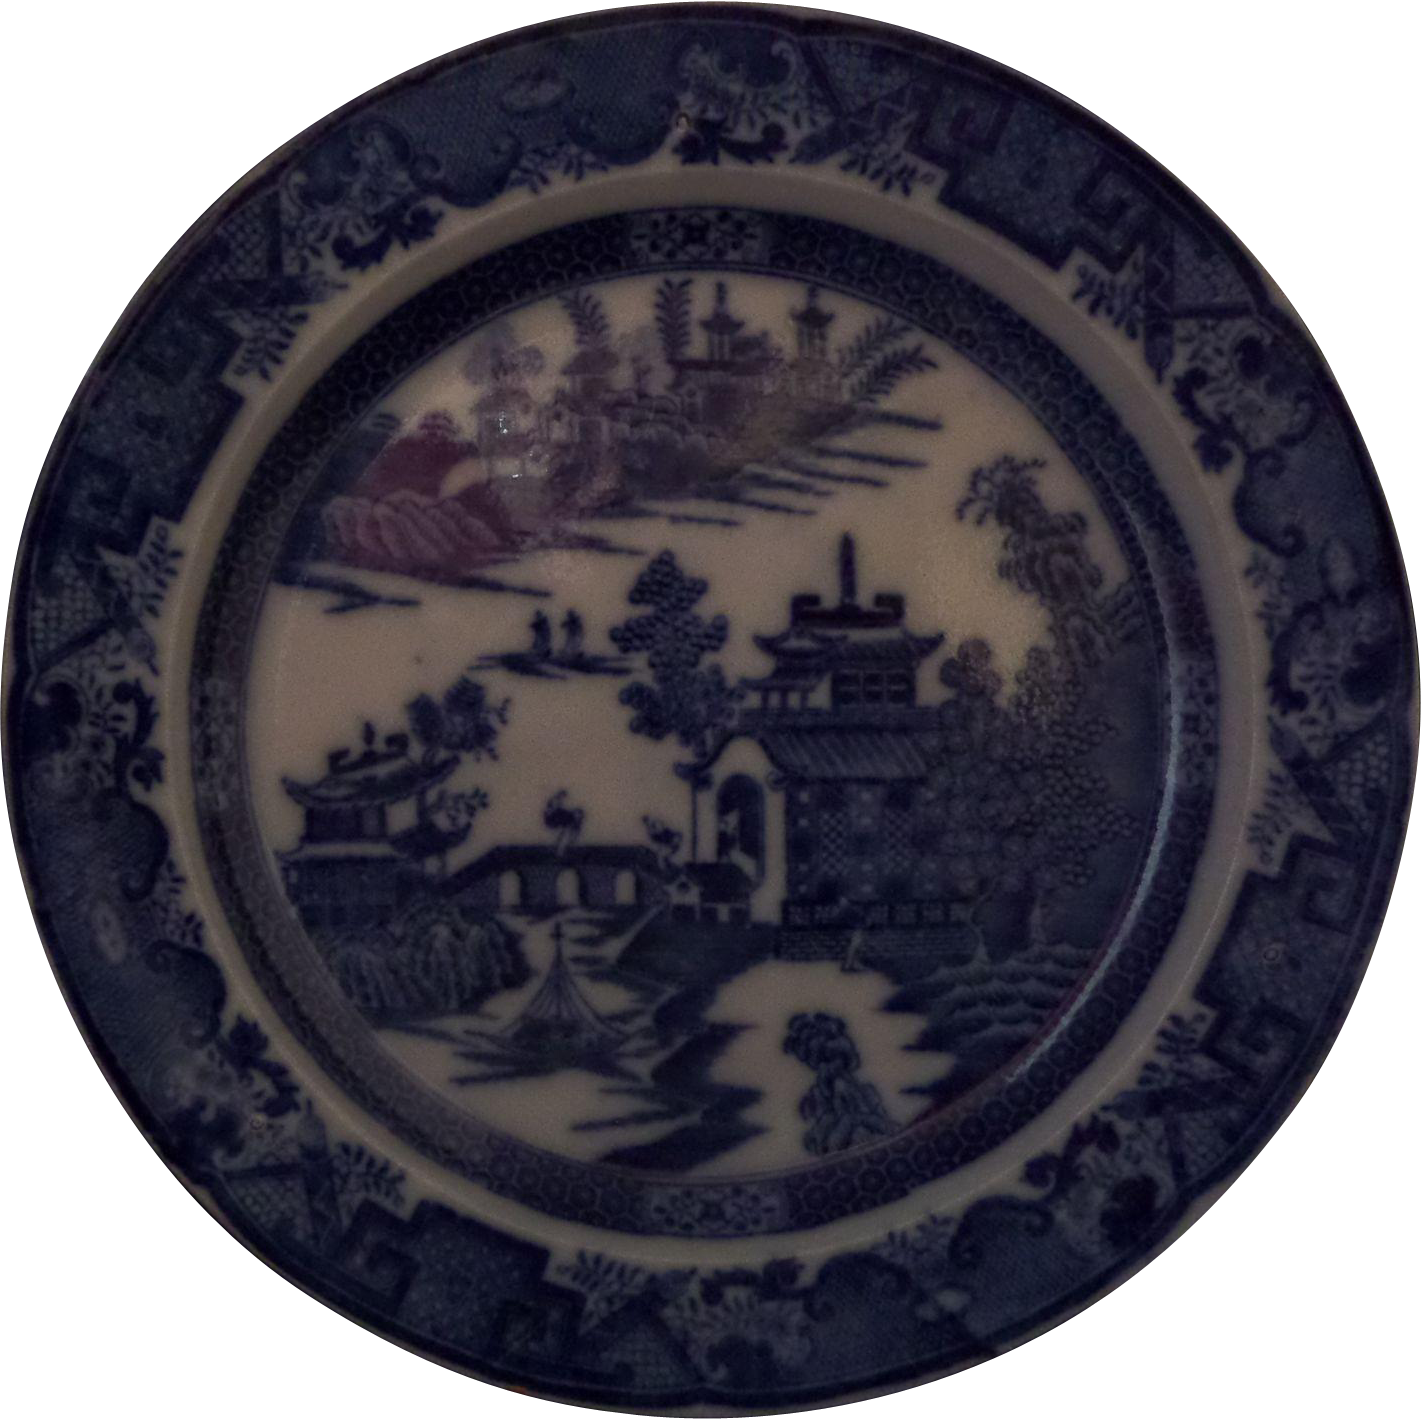 Leeds Pottery Blue and White Transferware Dessert Plate 'Long Bridge' Pattern Pearlware Circa 1790  - 8.1/4""